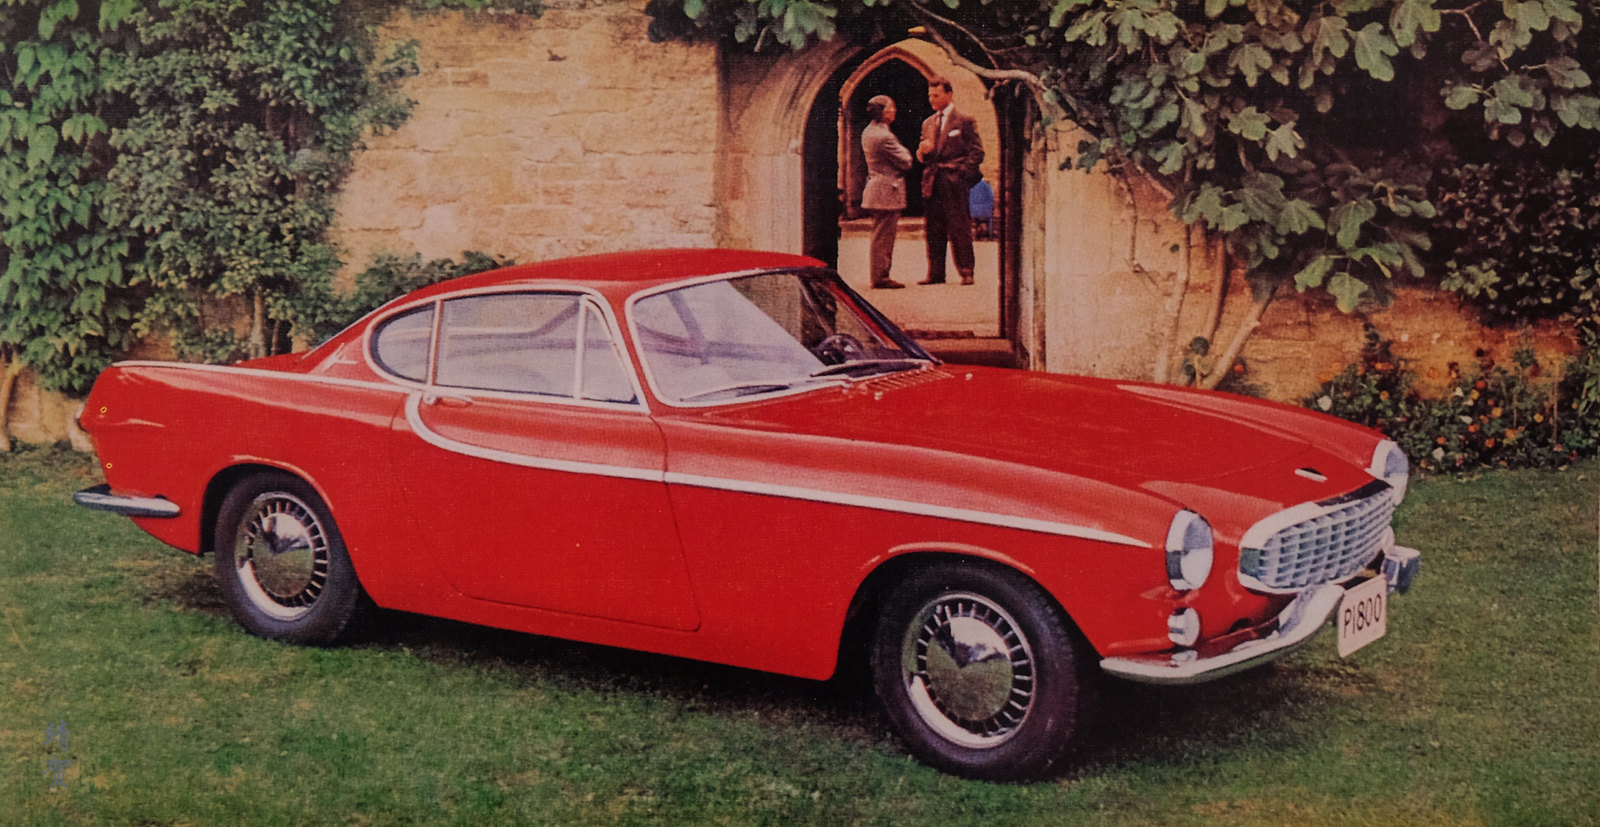 The P1800 in red